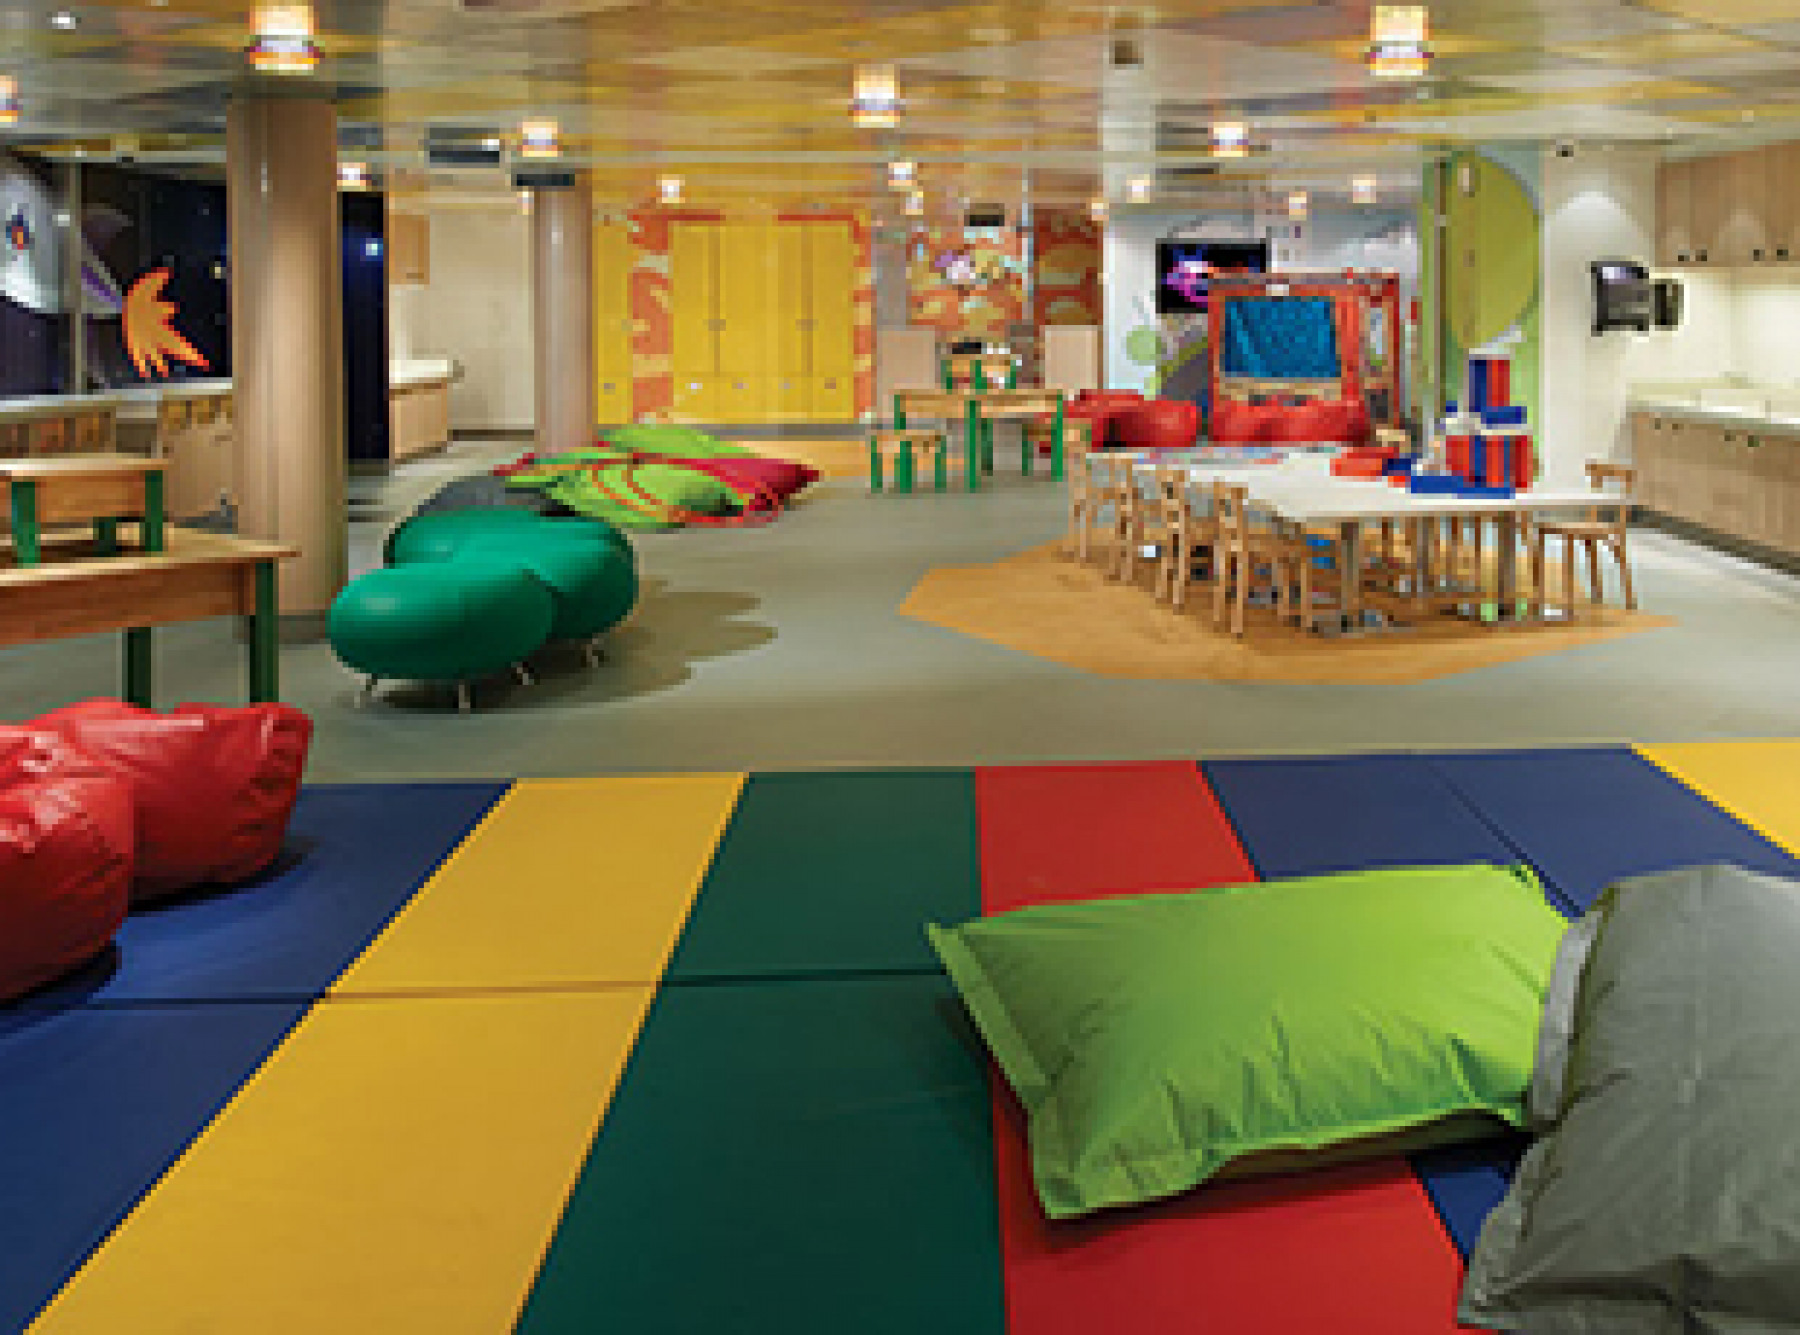 Norwegian Cruise Line Norwegian Breakaway Interior Splash Academy.jpg